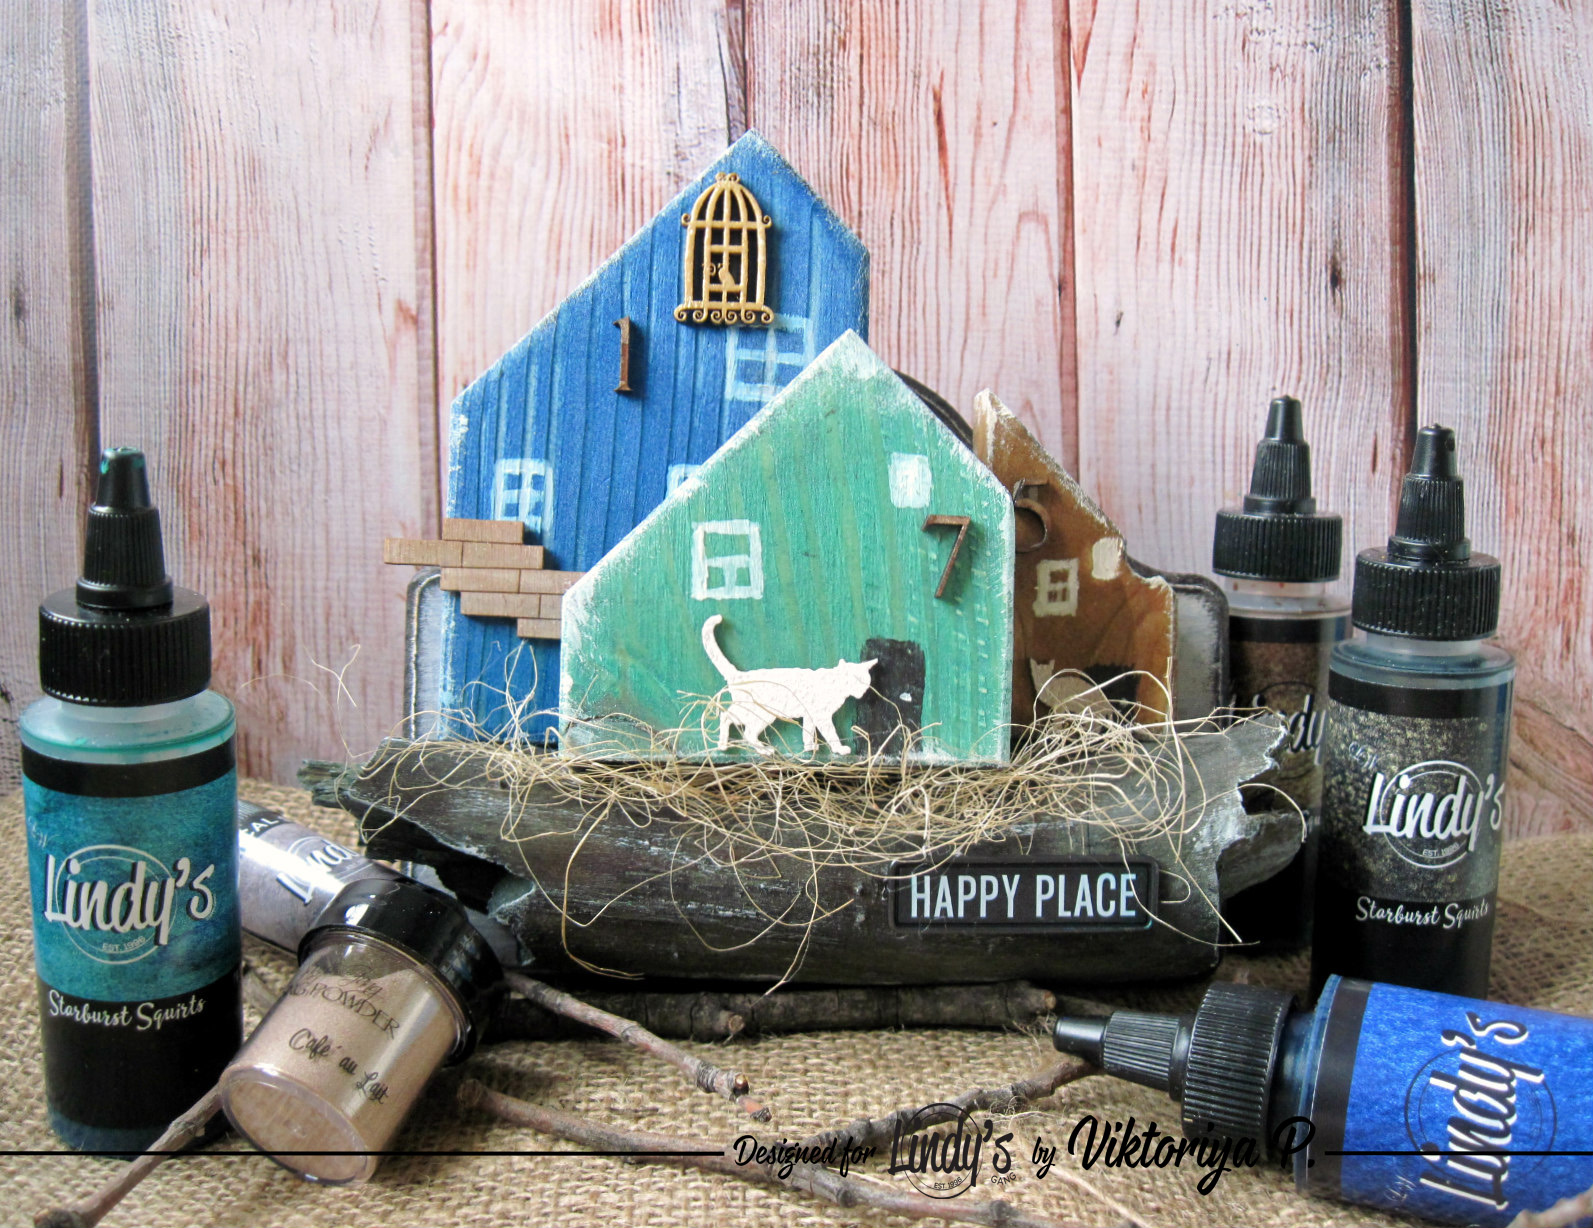 Diy Home Decor Happy Place With Lindy S By Viktoriya